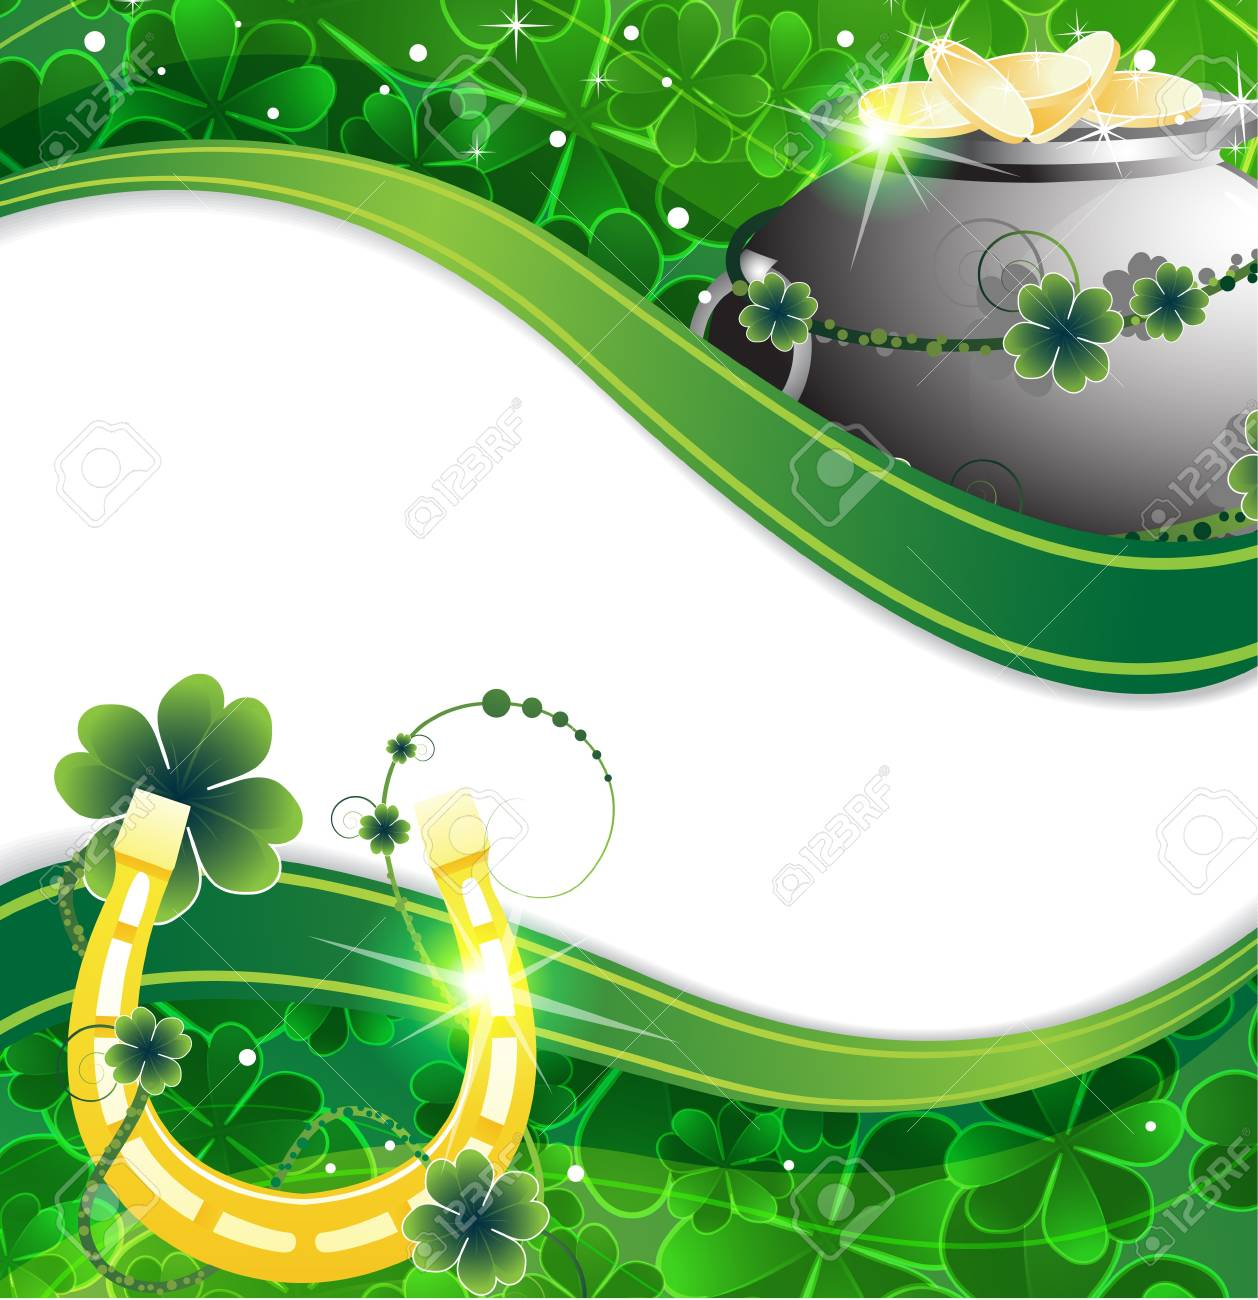 Pot of gold coins and  horseshoe on a clover background Stock Vector - 18315490